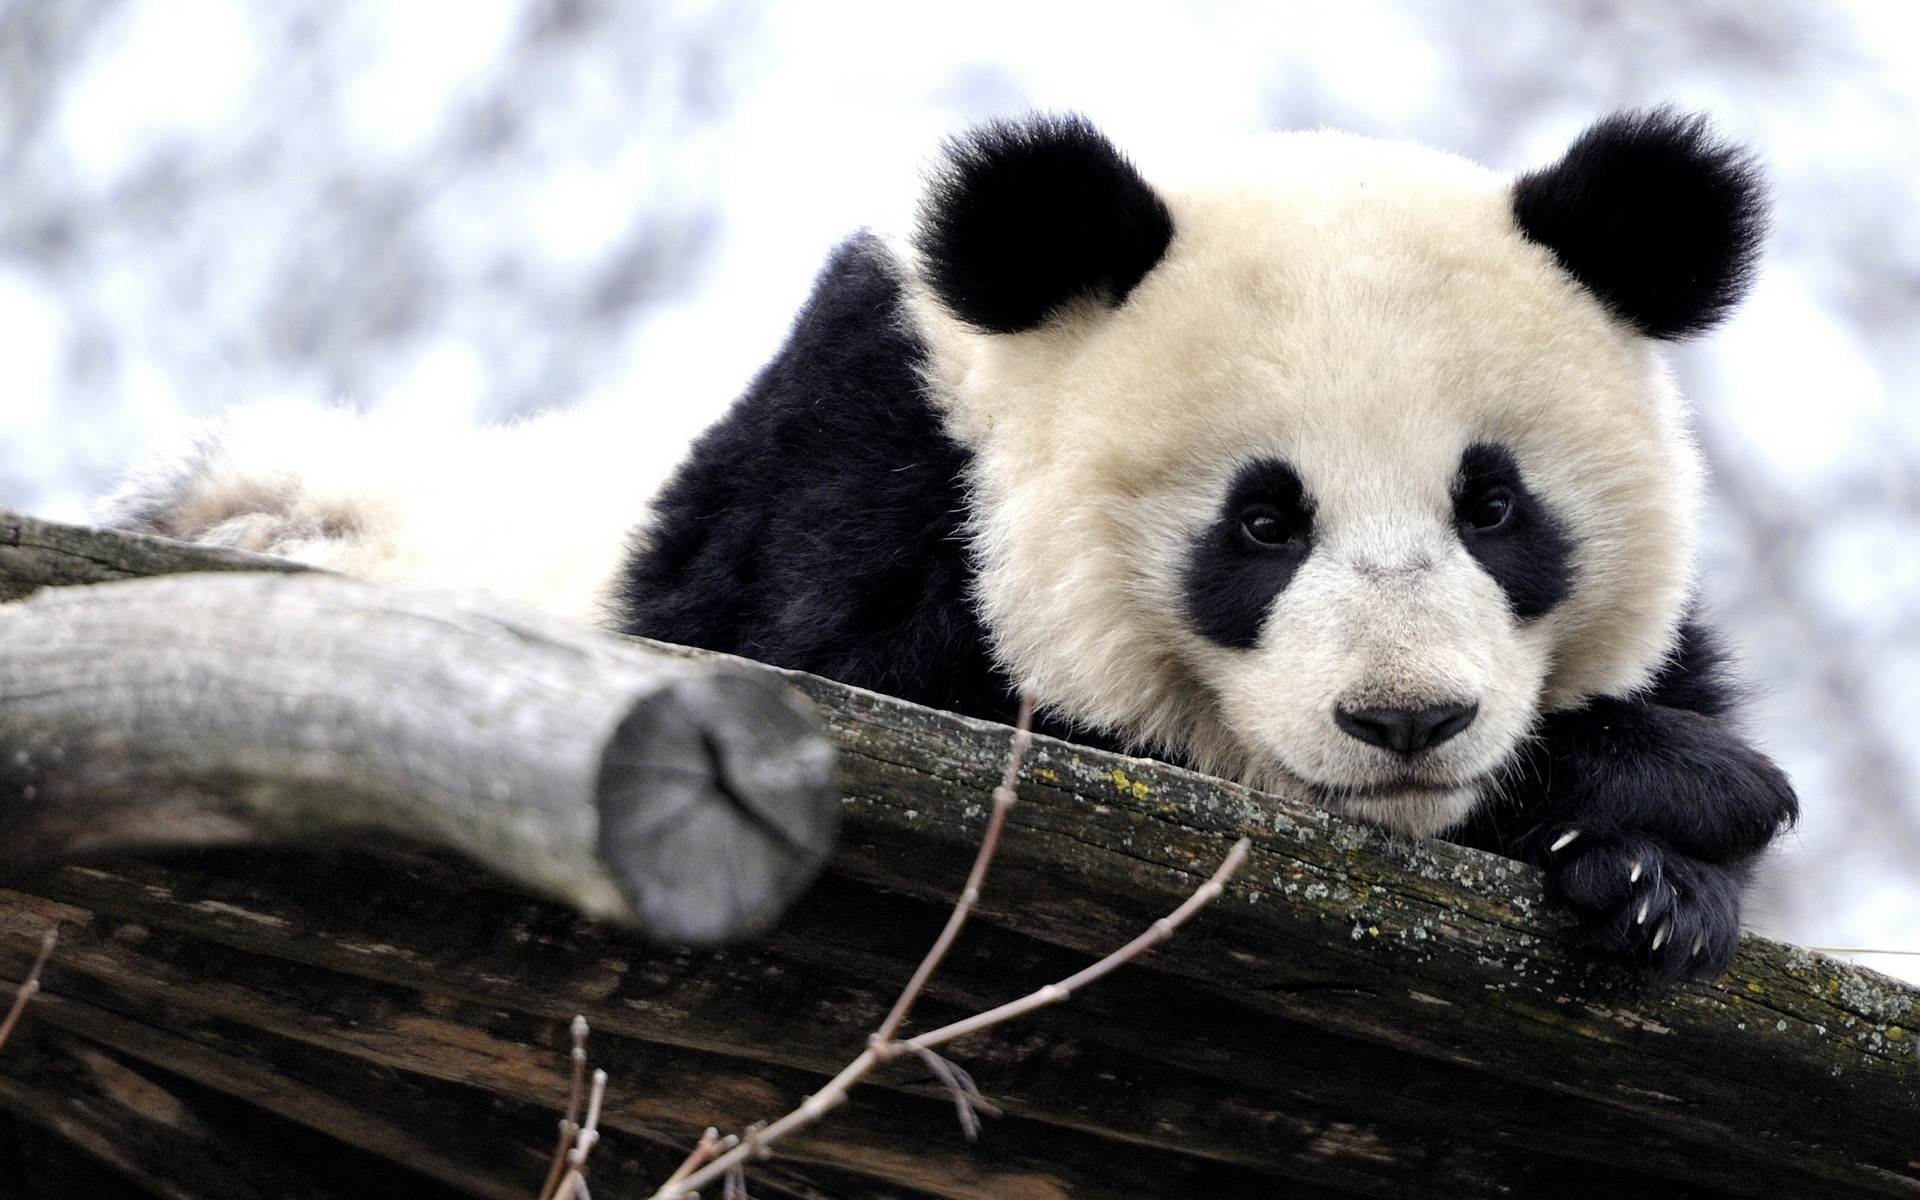 Baby Panda In Snow Wallpapers HD with High Definition Wallpaper  px 660.64 KB Animals Bear